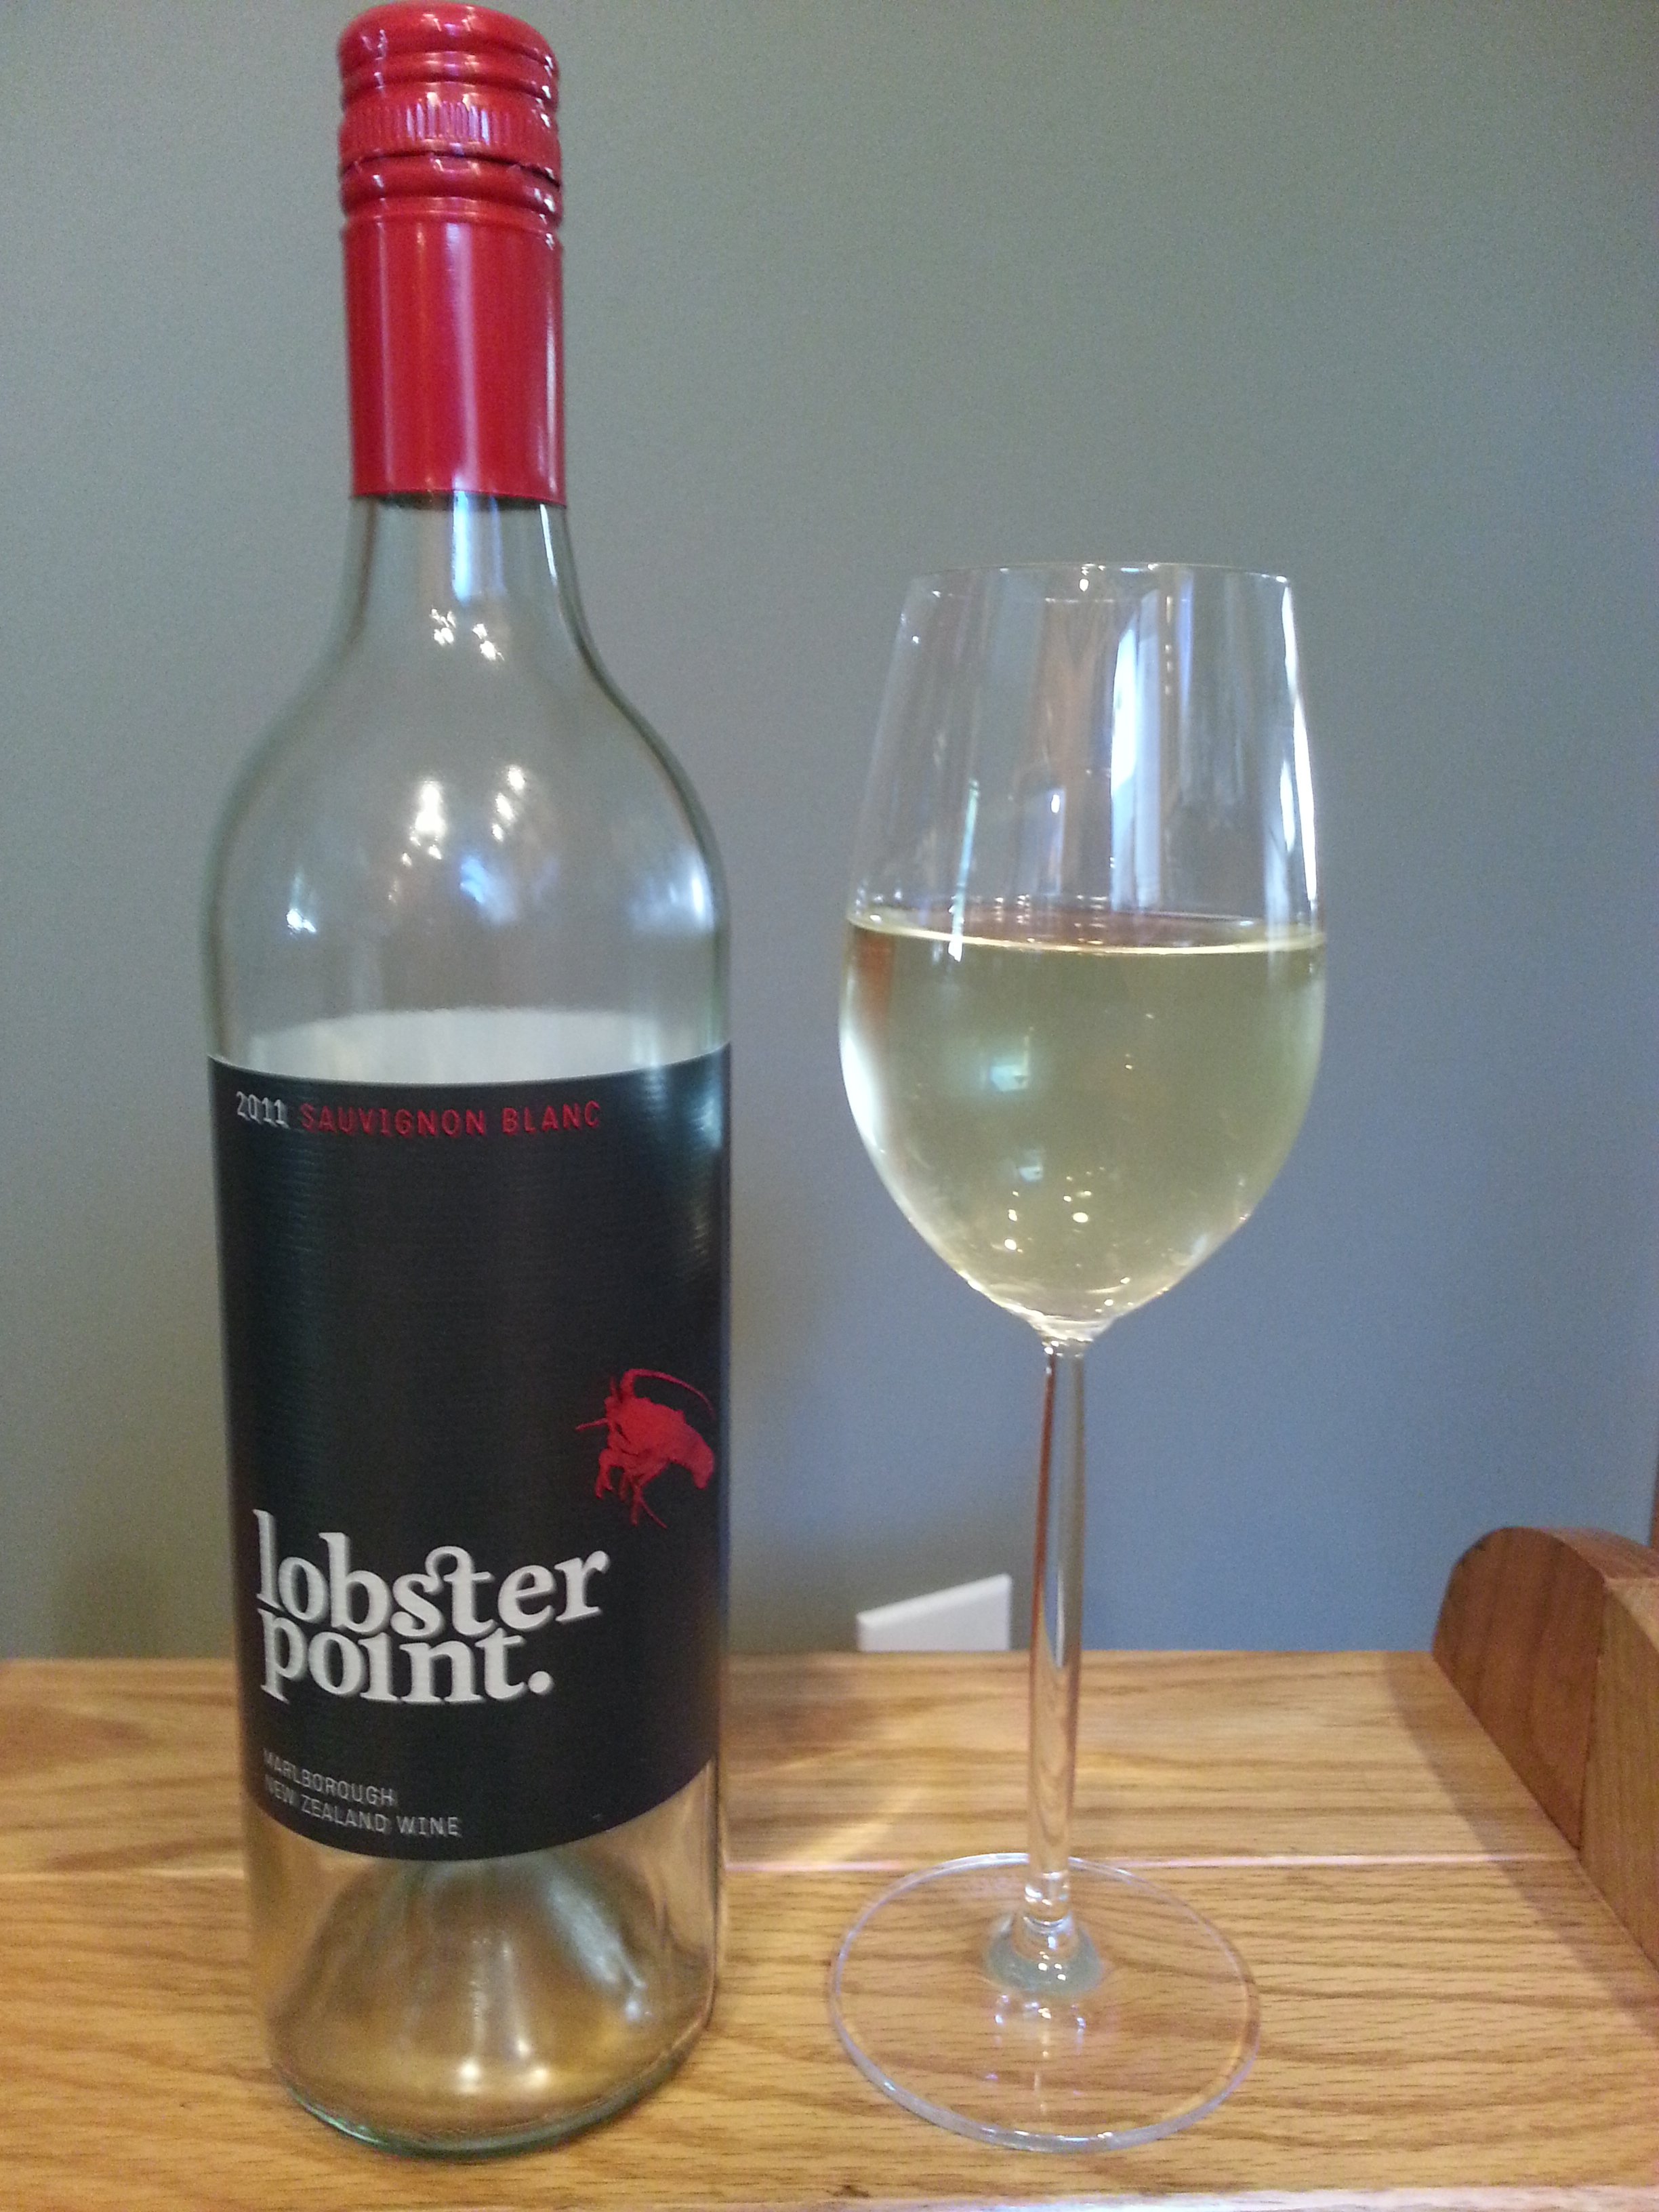 Lobster Point Sauvignon Blanc (2011)